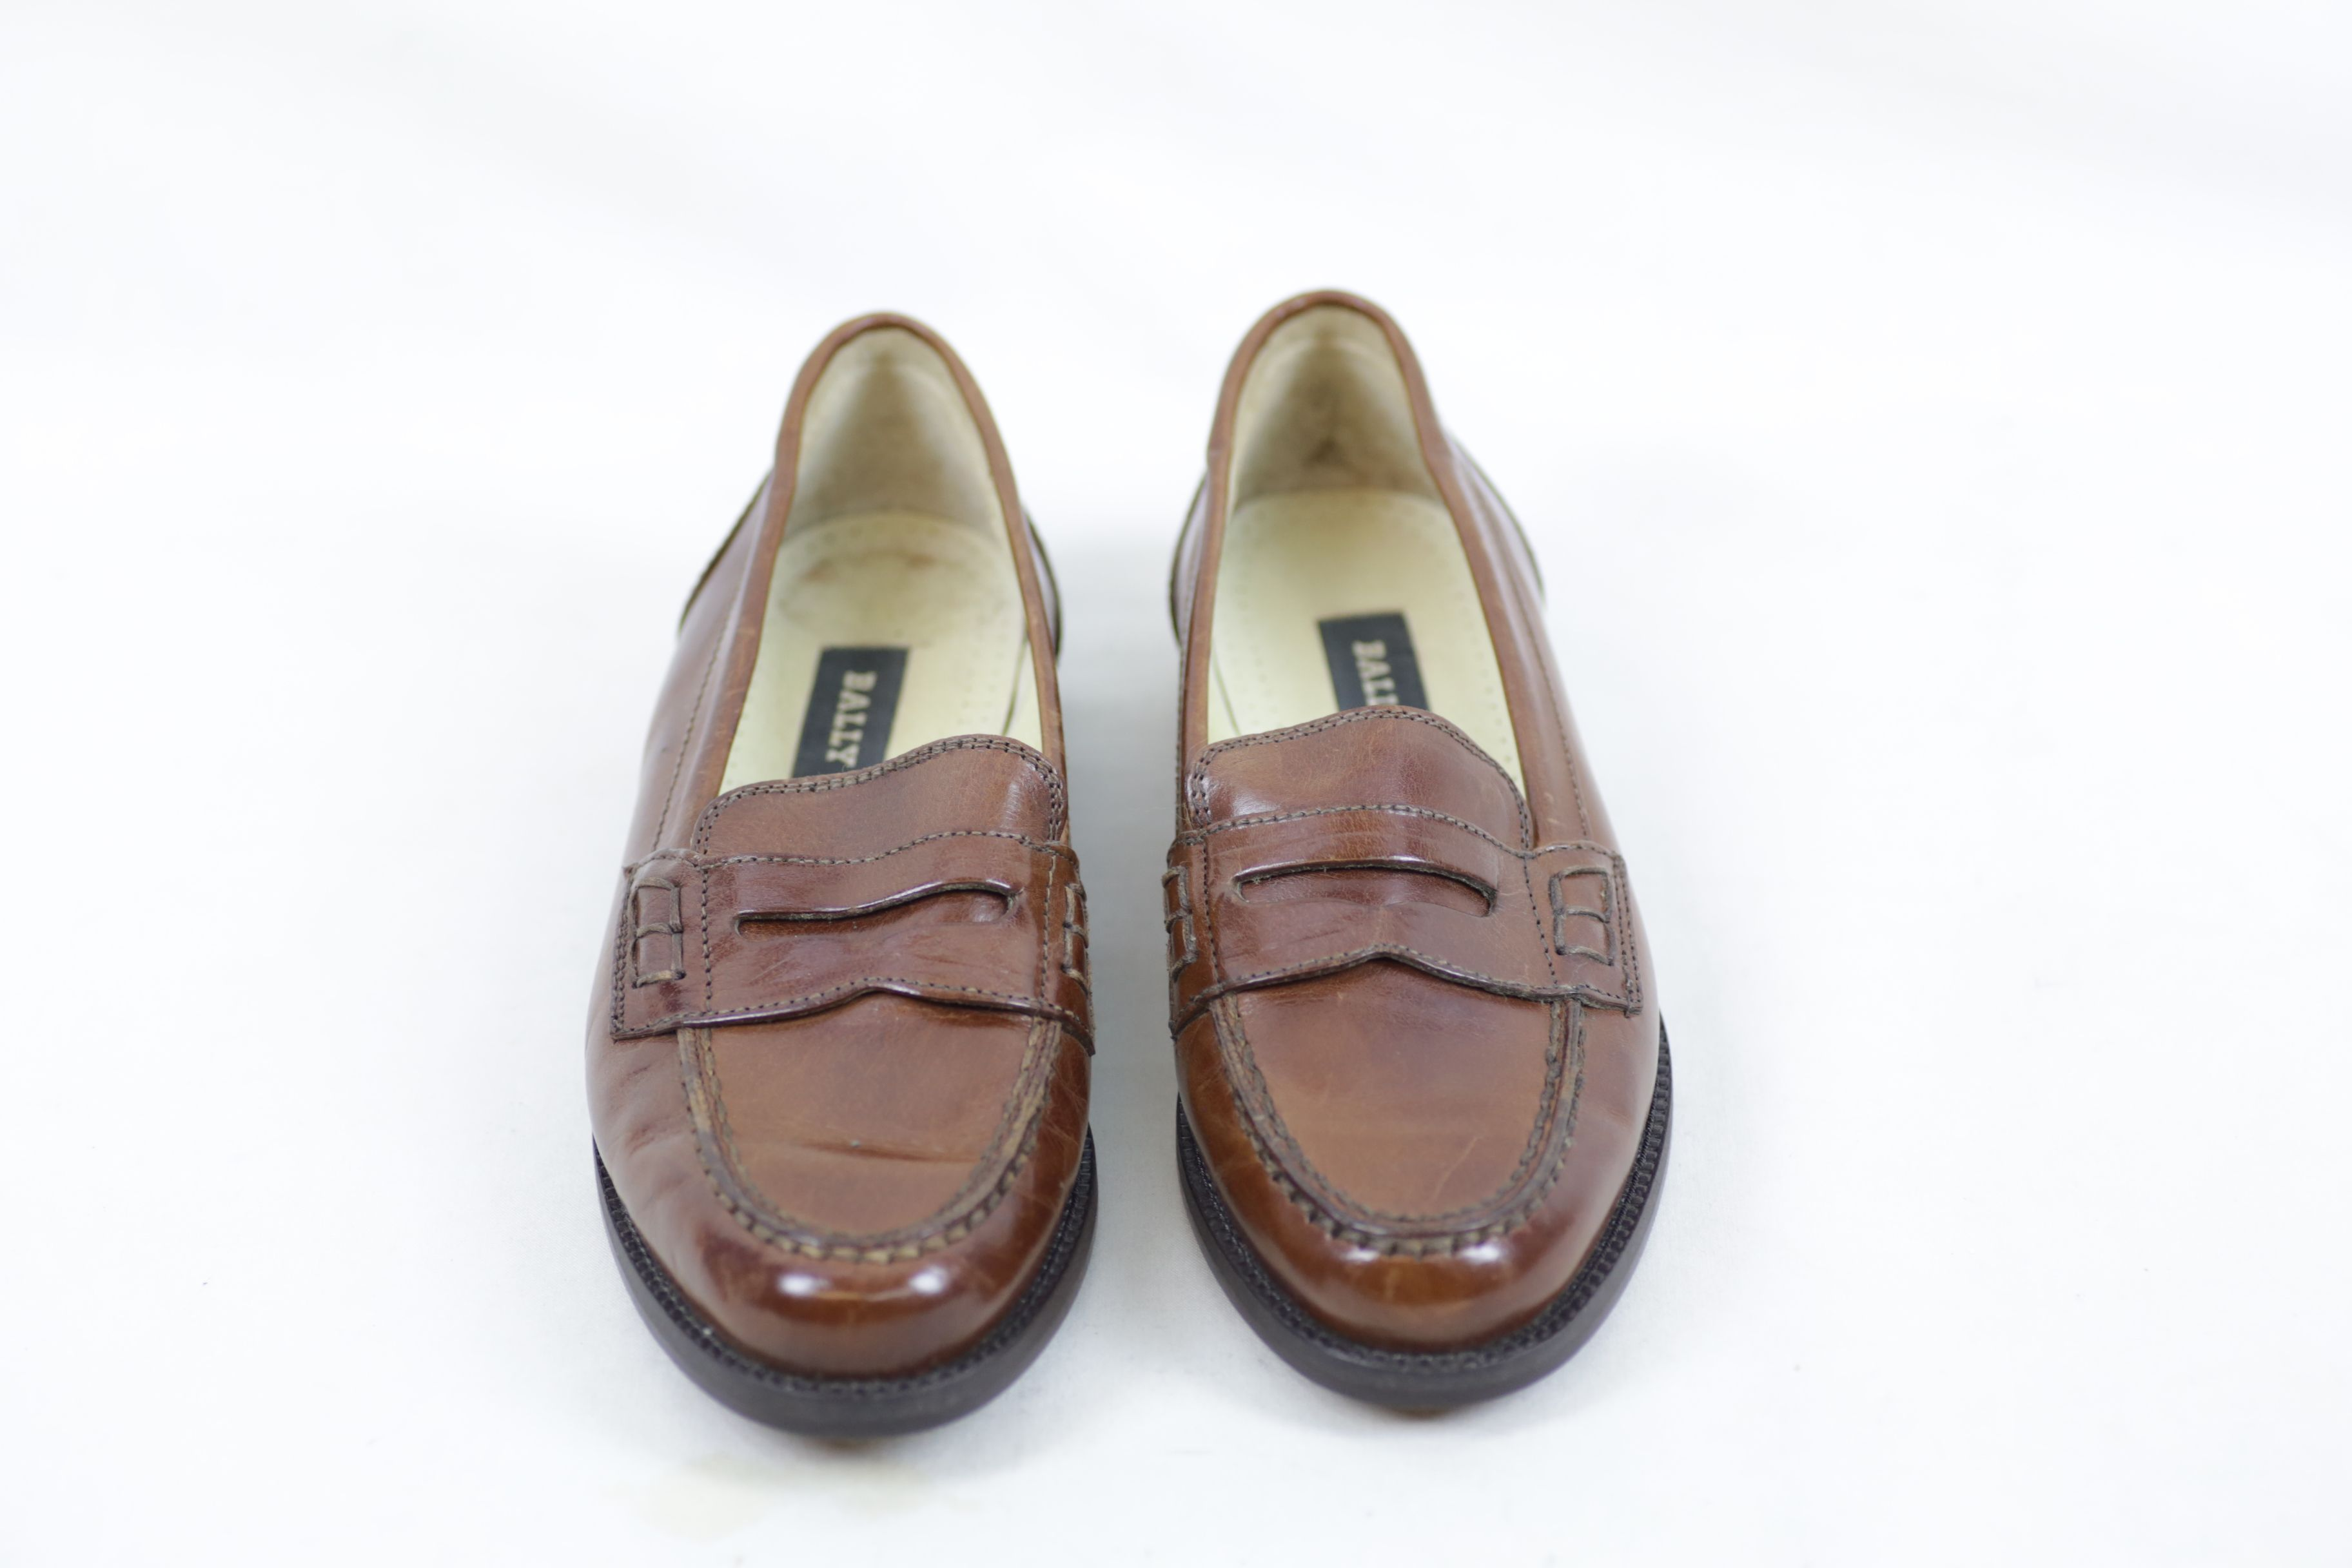 Bally Brim Classic Mid Brown Leather Shoes / Loafers - Size EU 36.5 UK 3.5 Thumbnail 1